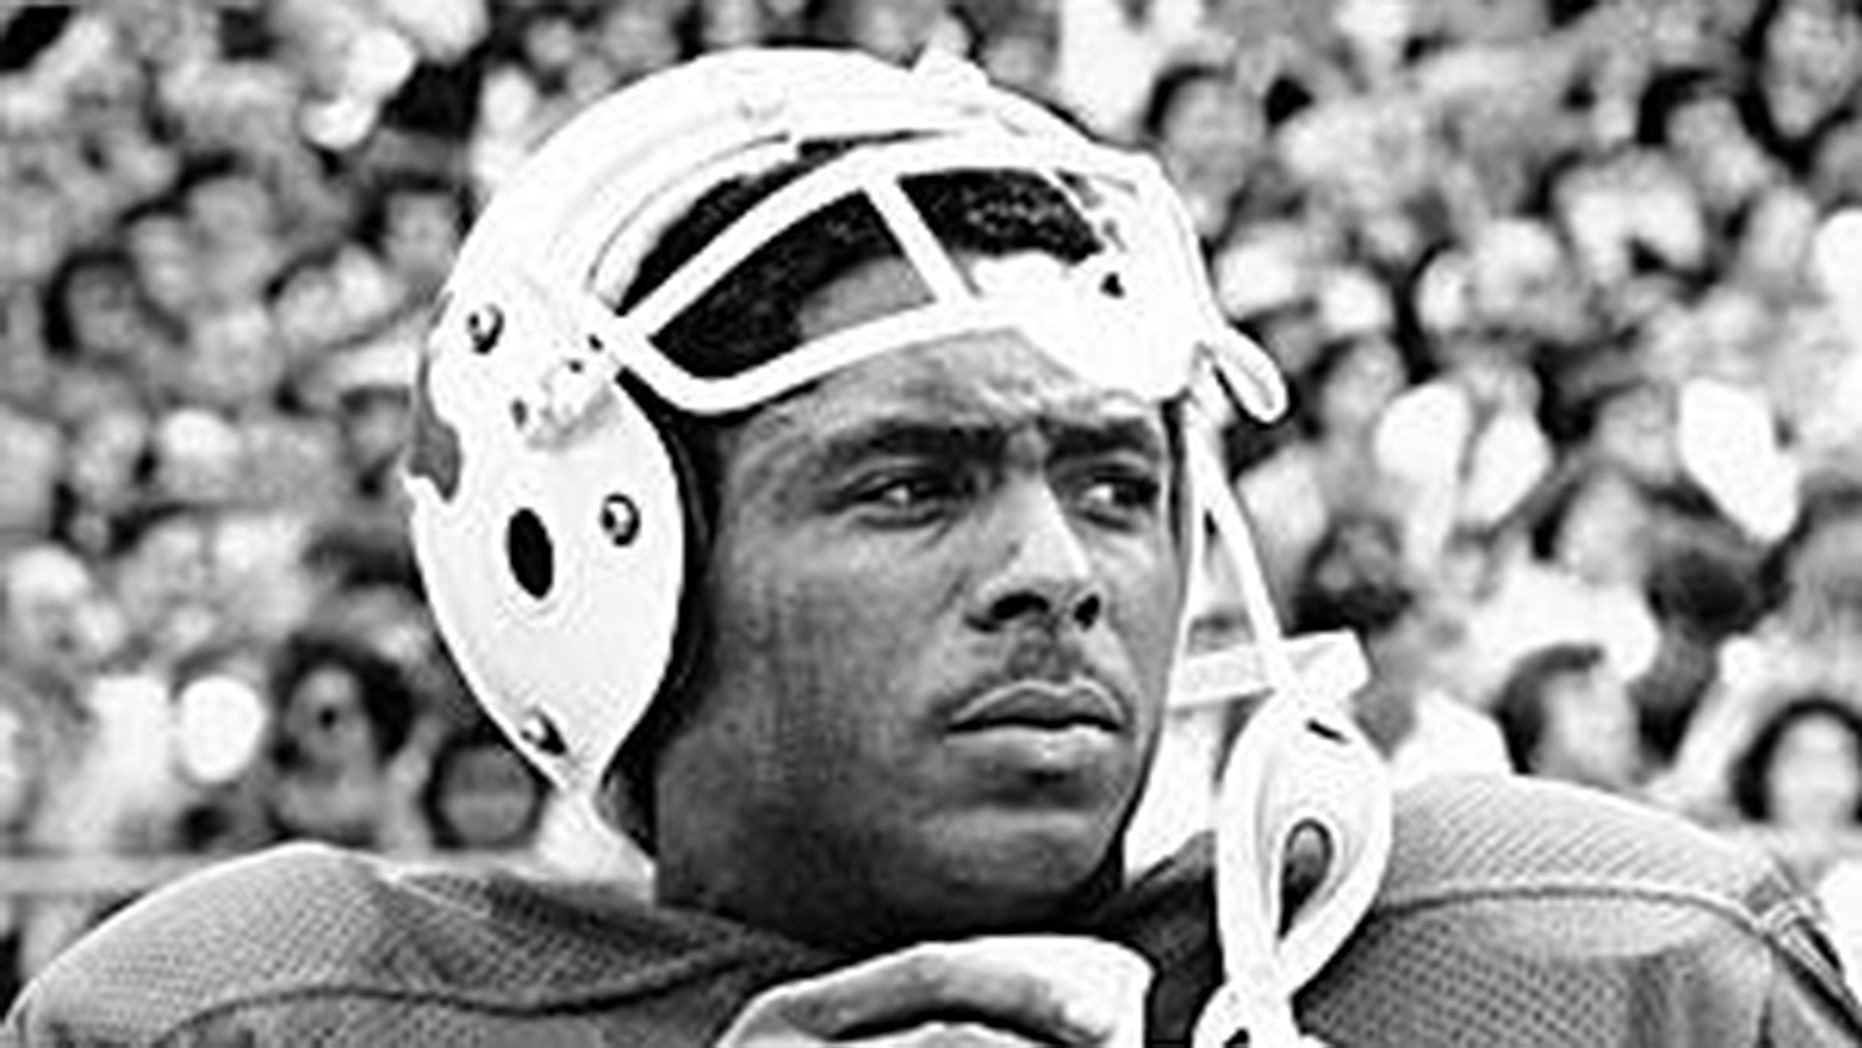 Texas legend, ex-NFL far-reaching receiver and Olympic bullion medalist Johnny Lam Jones has died.